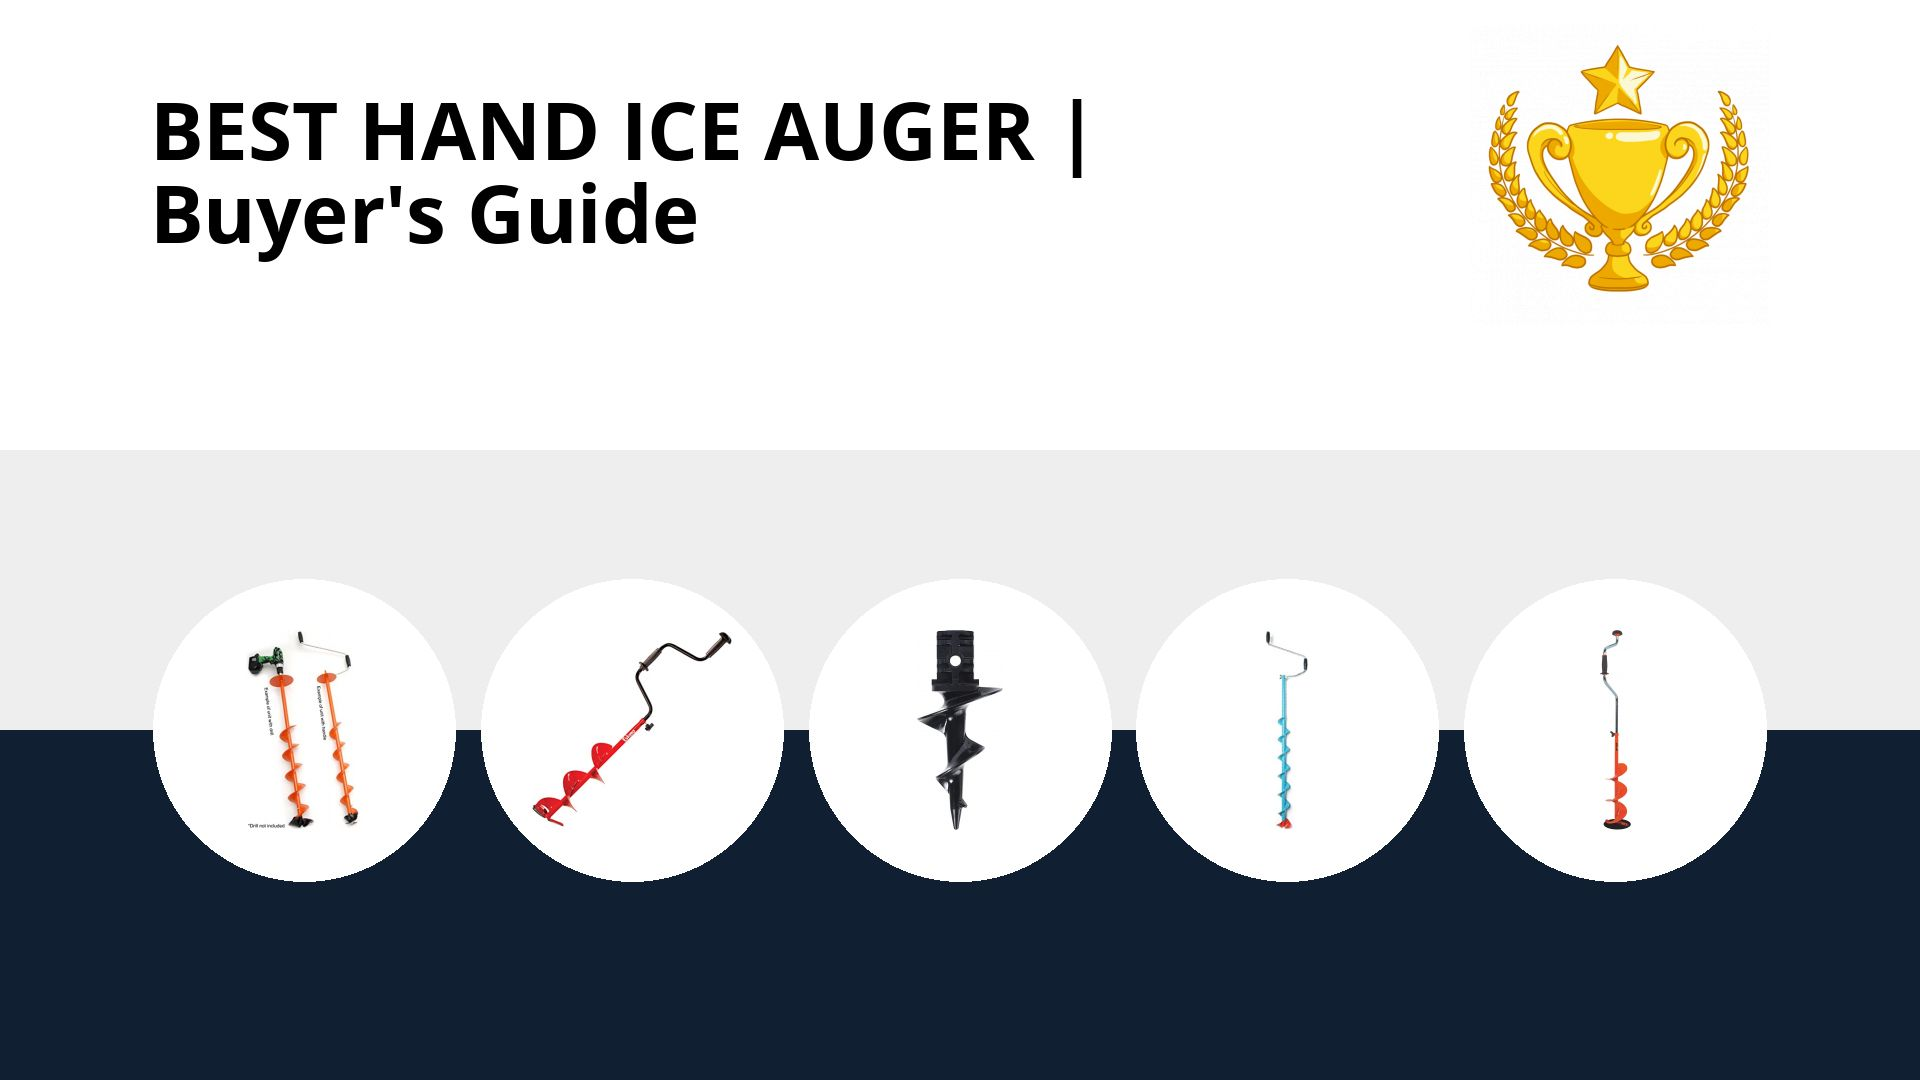 Best Hand Ice Auger: image